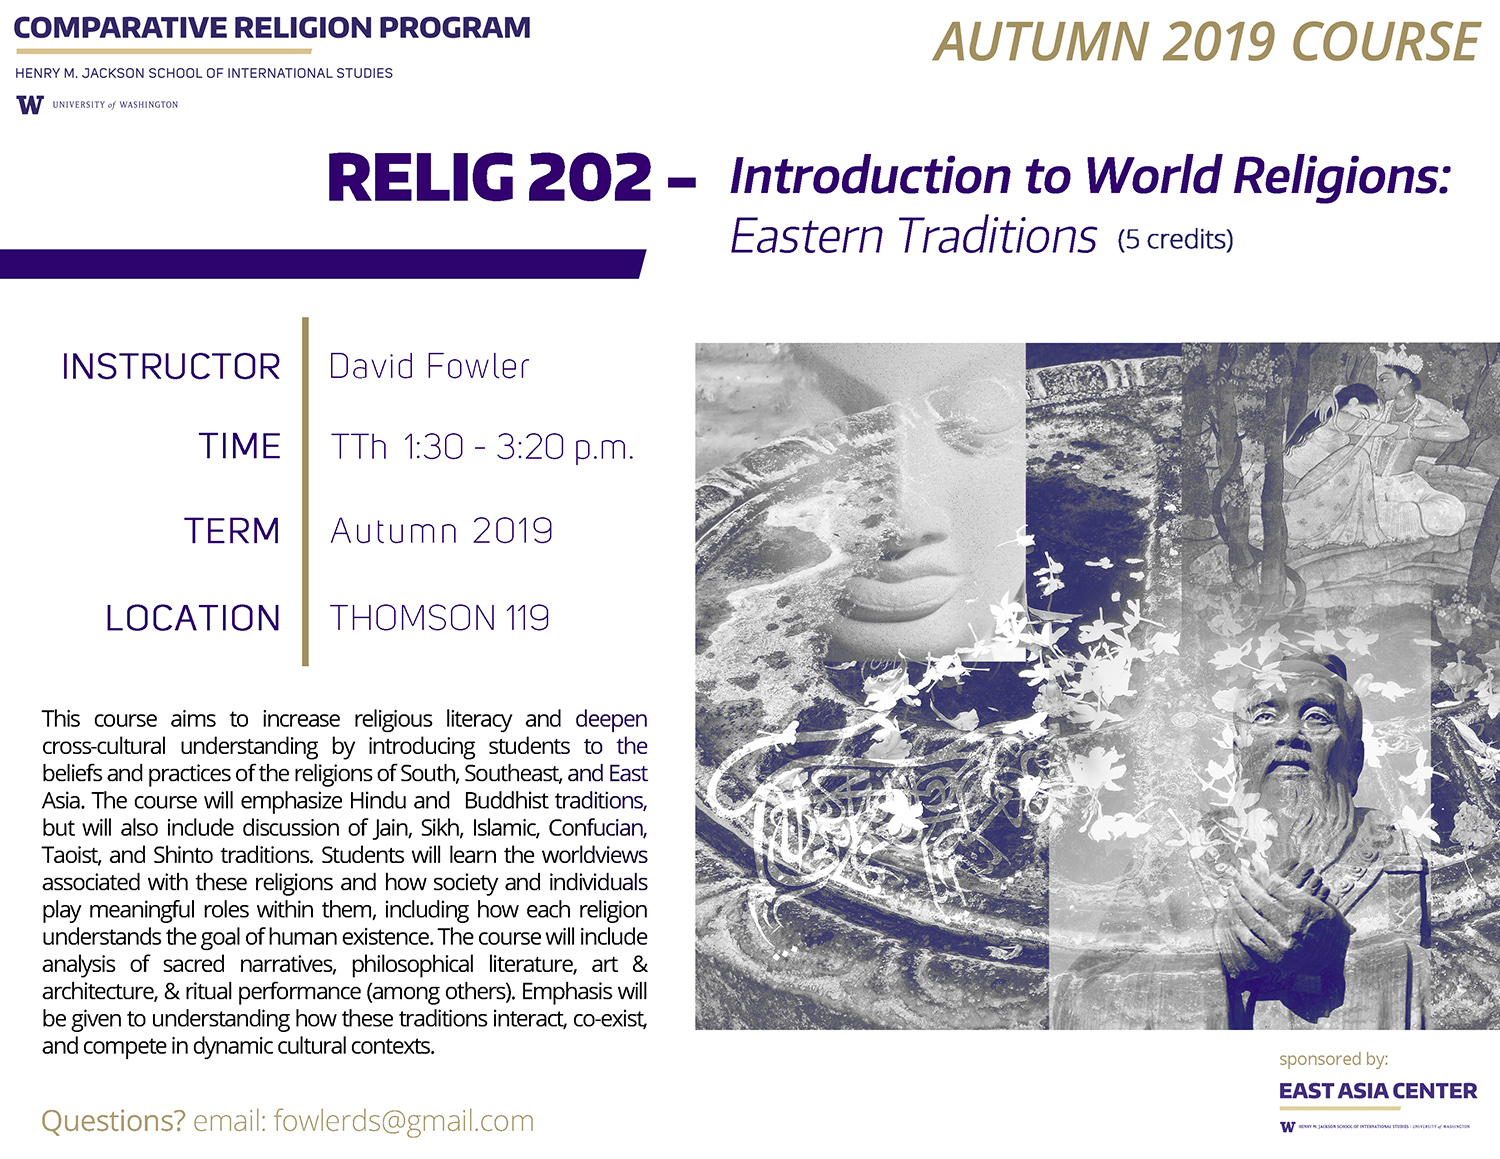 RELIG 202 Course Flyer 8.5x11 4 + EAC 1500px.jpg